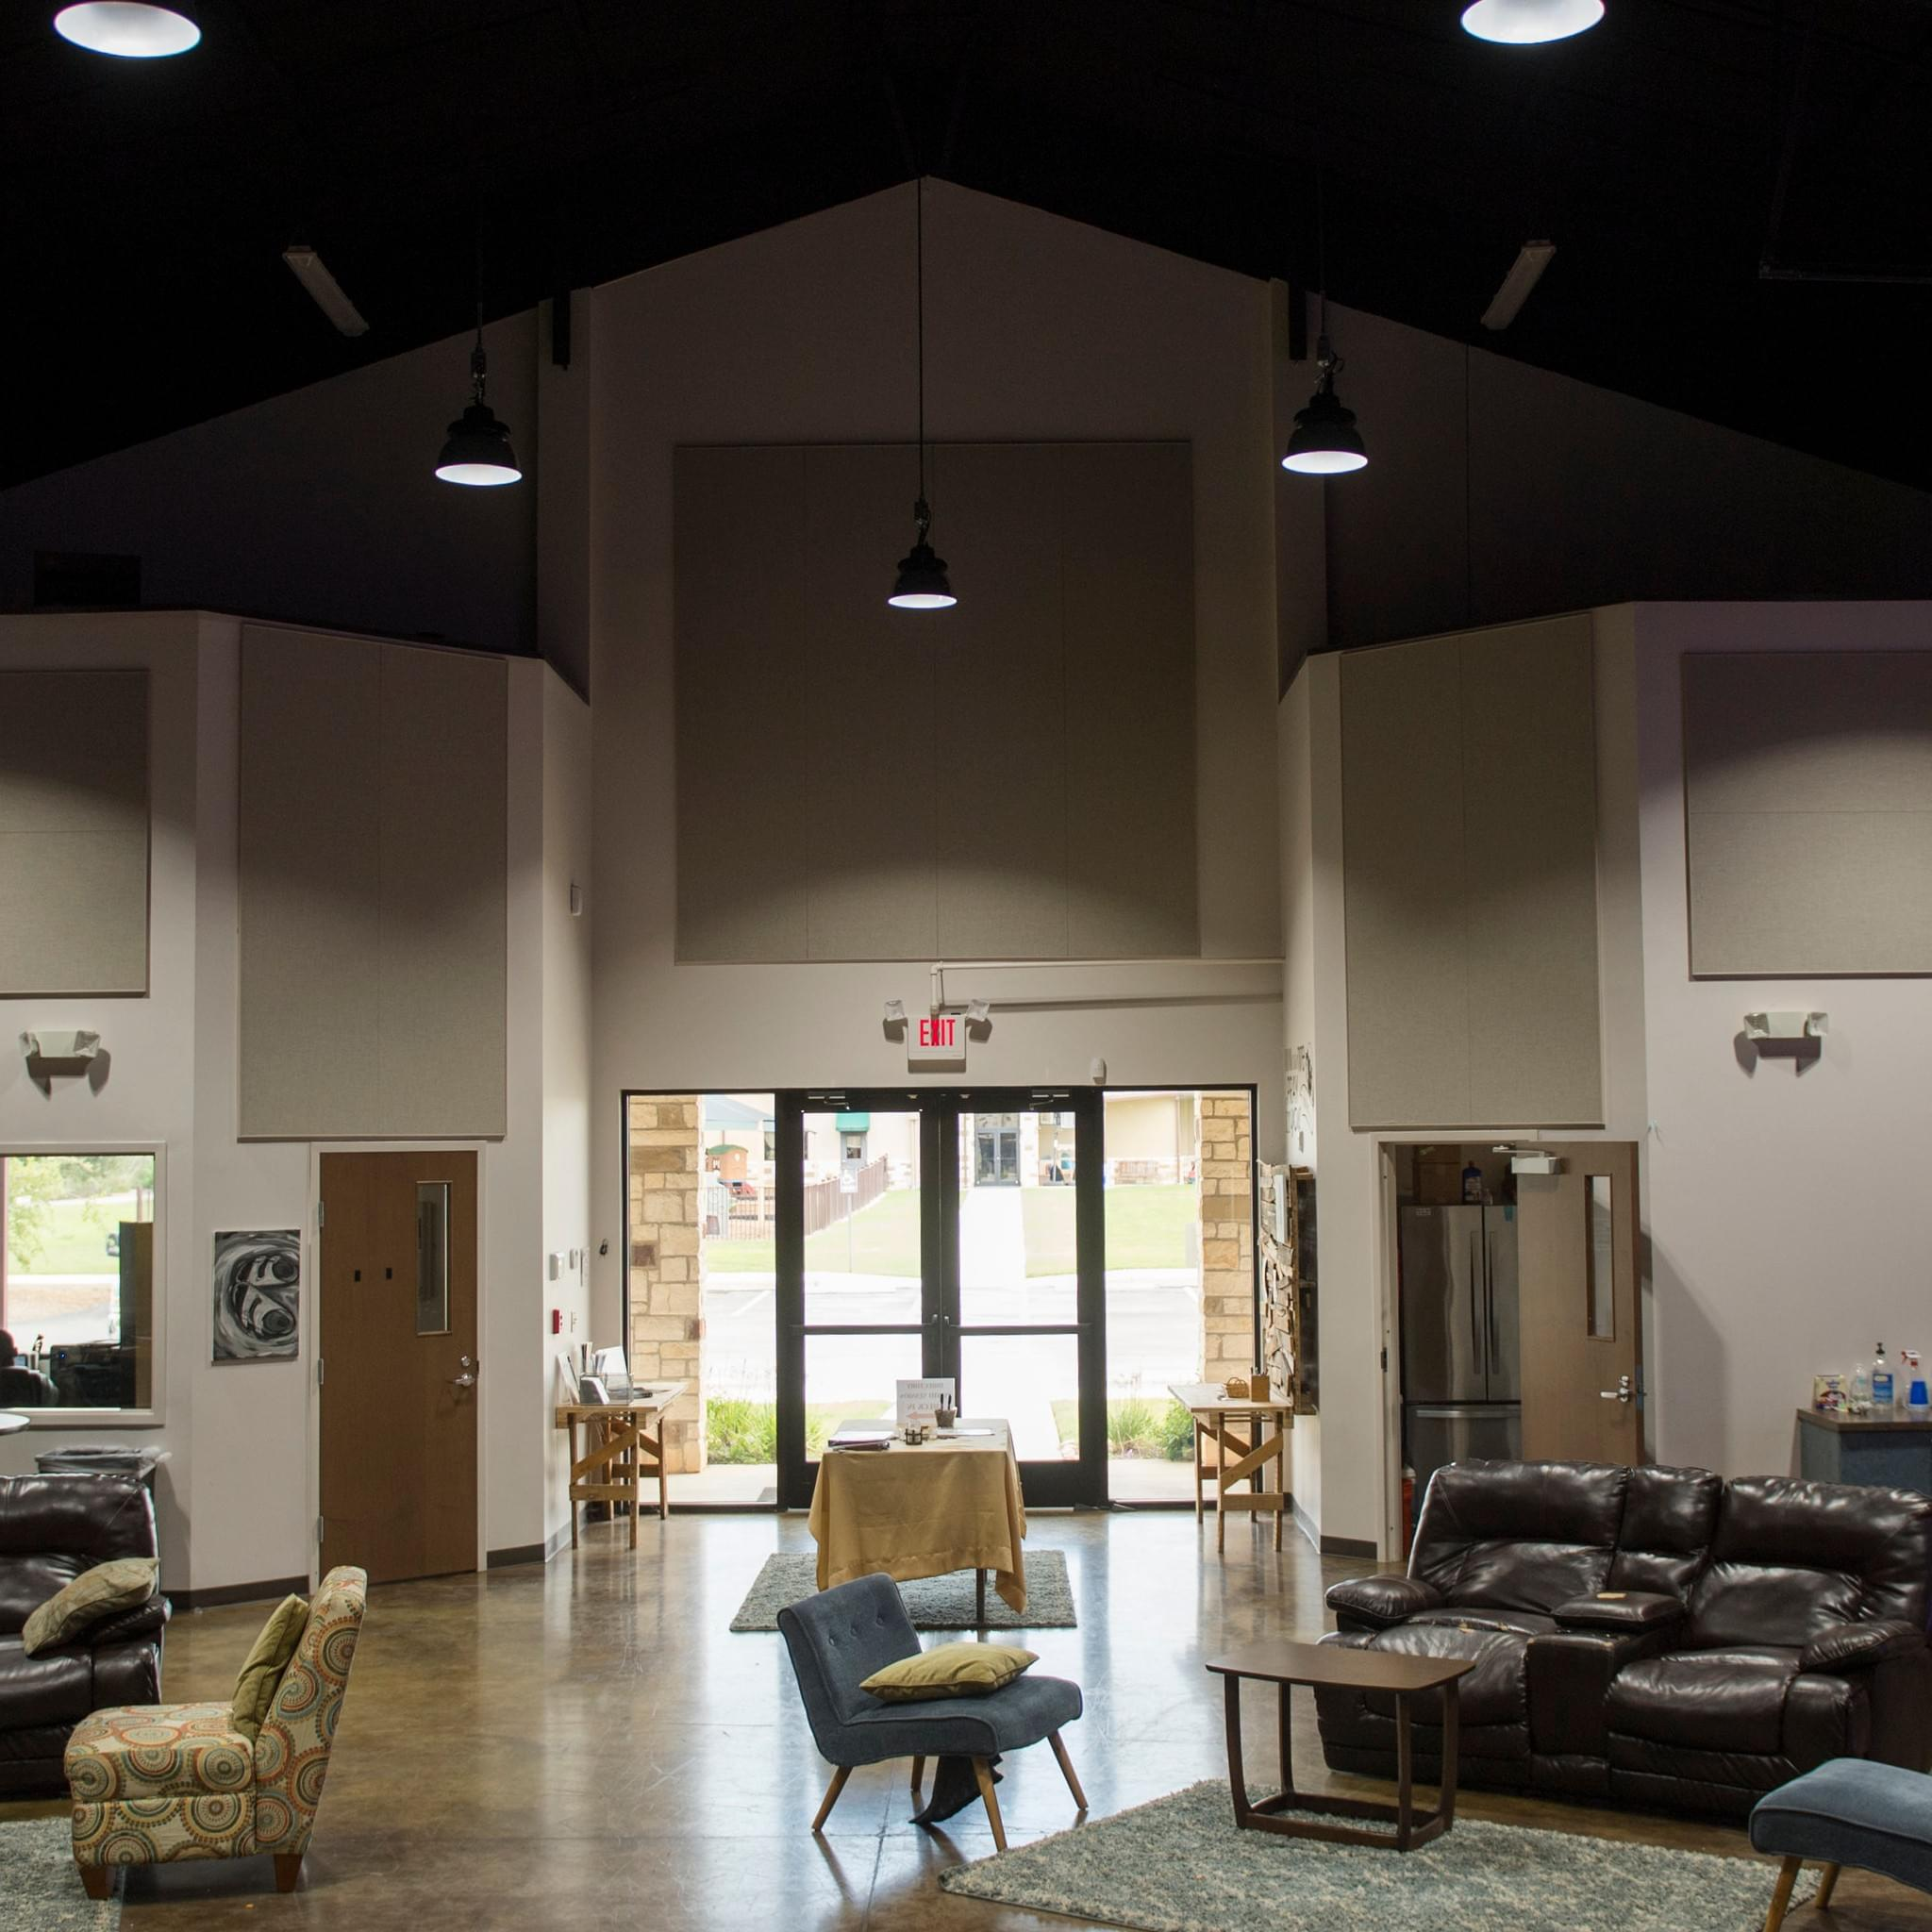 Gruene United Methodist Mission Outreach Center